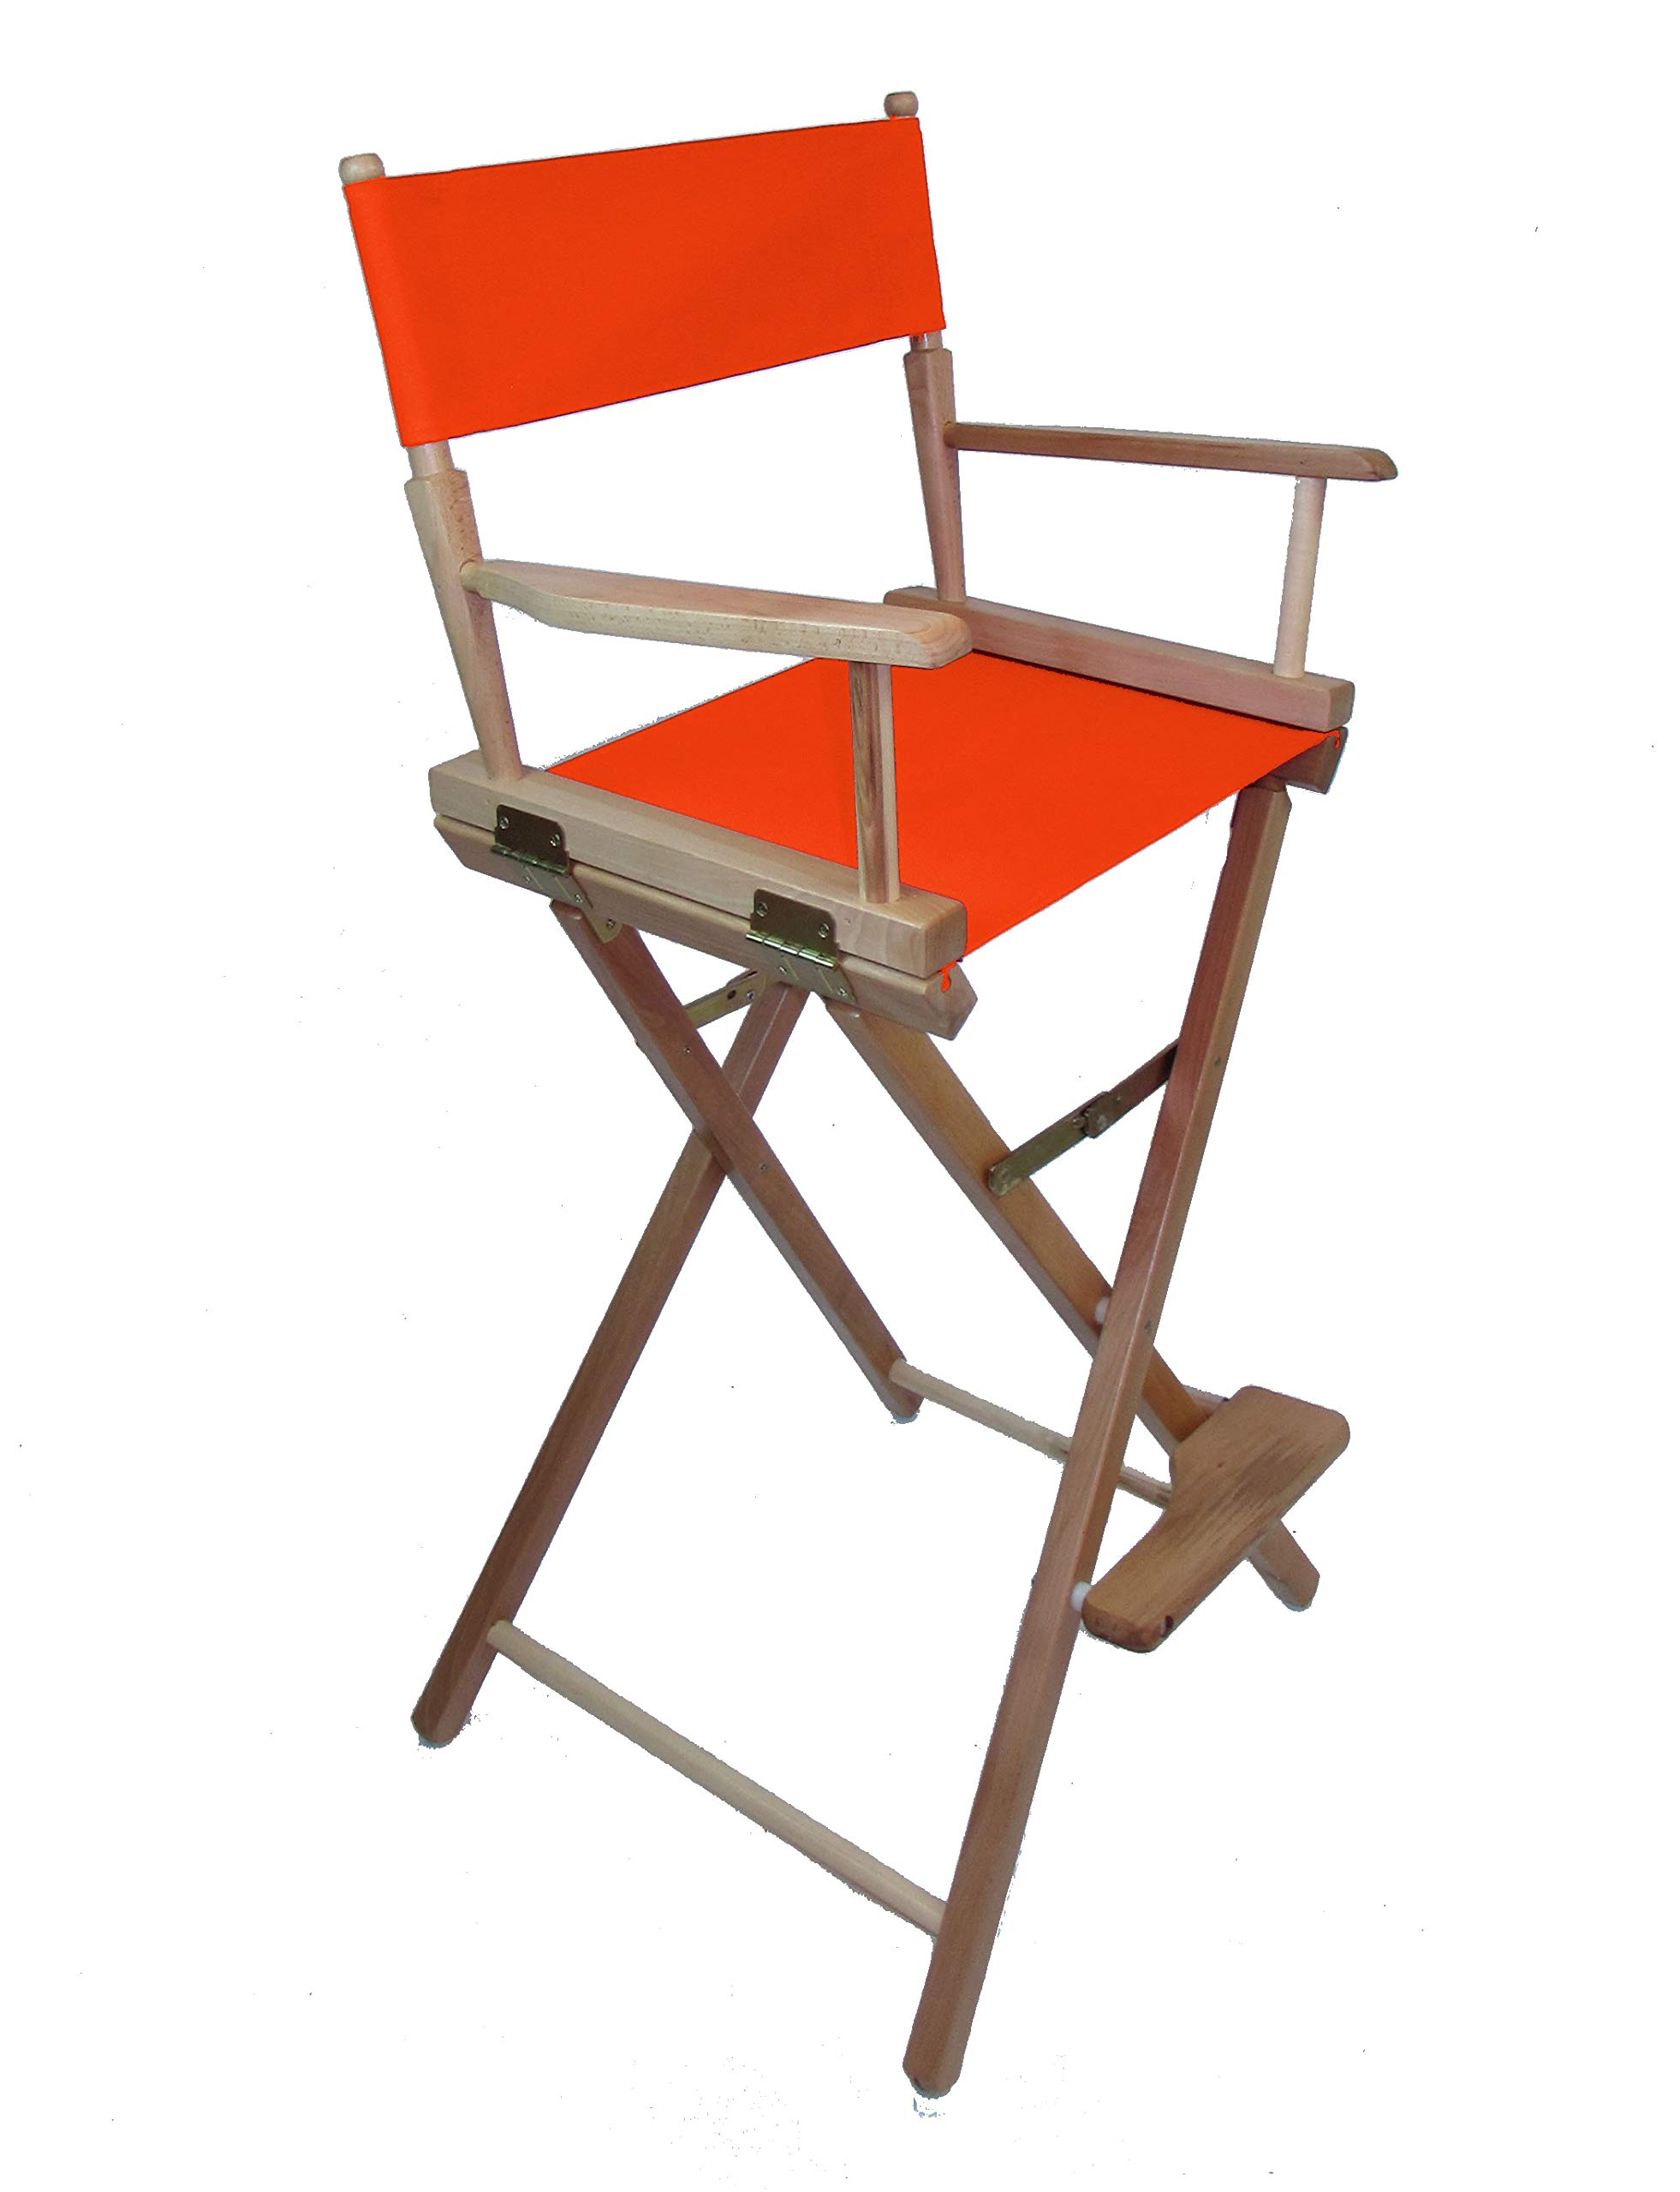 Gold Medal Commercial 30'' Bar Height Natural Frame Directors Chair - Orange by TLT